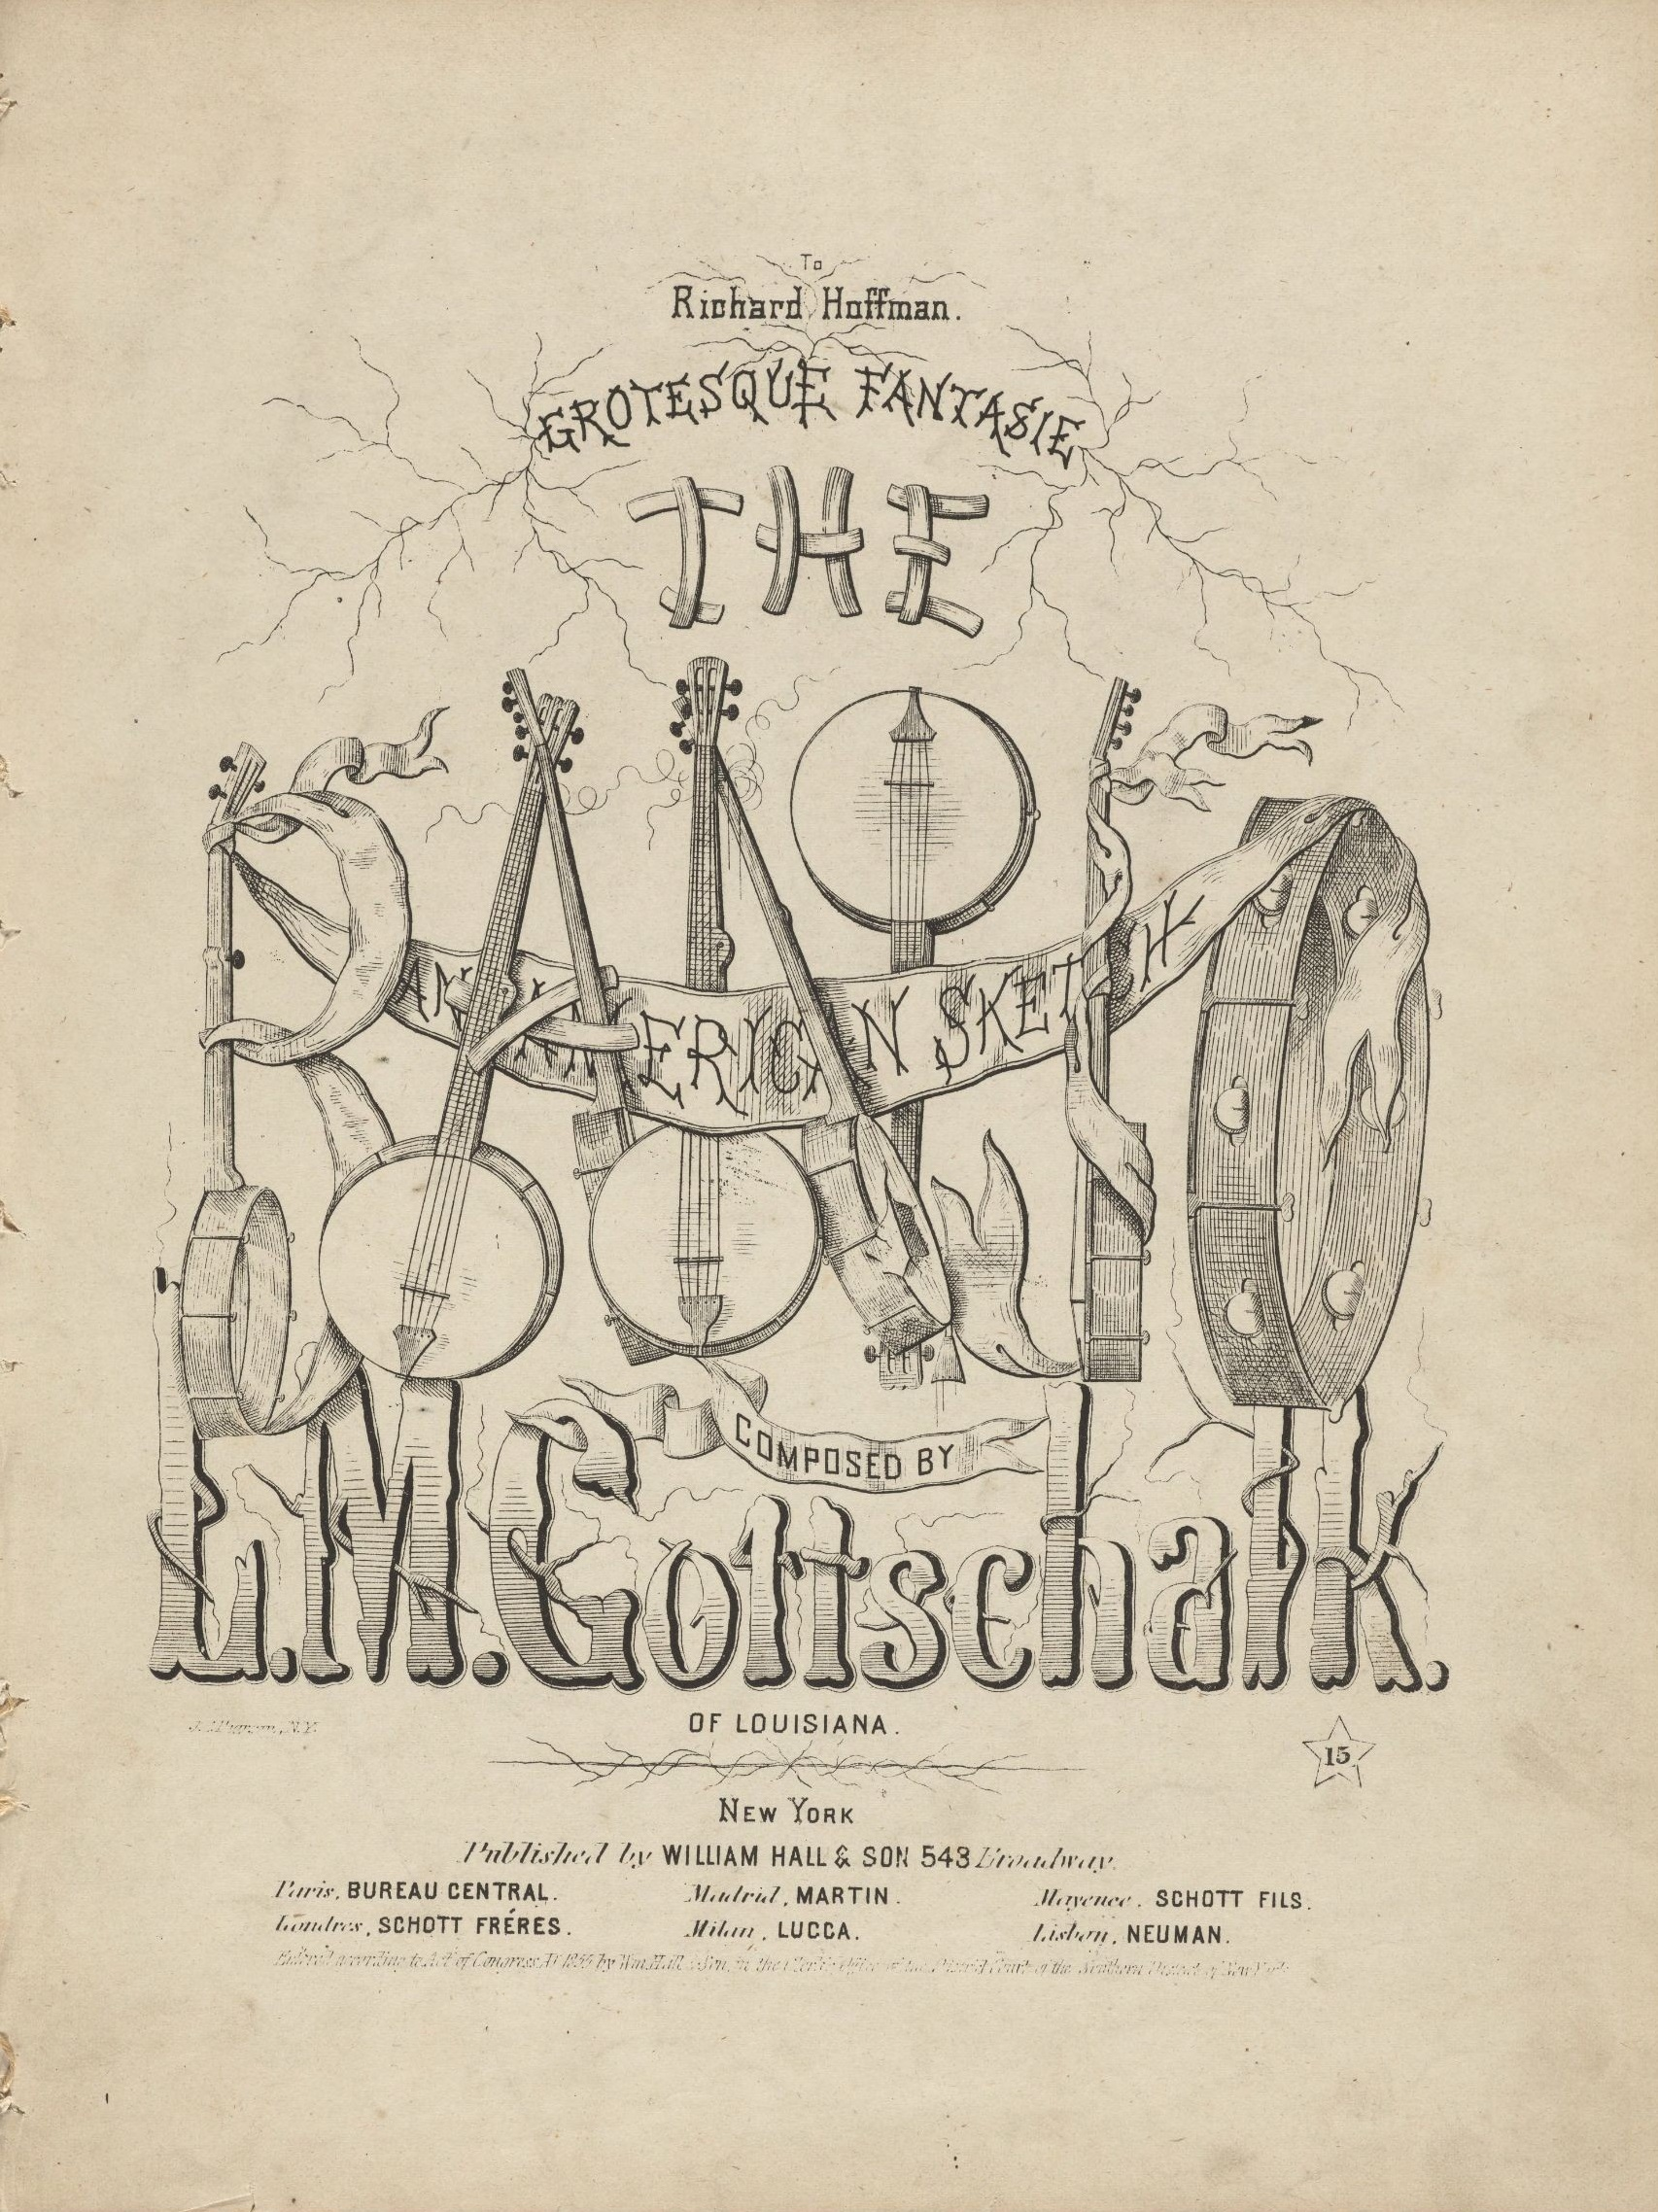 Gottschalk, The Banjo, frontespizio